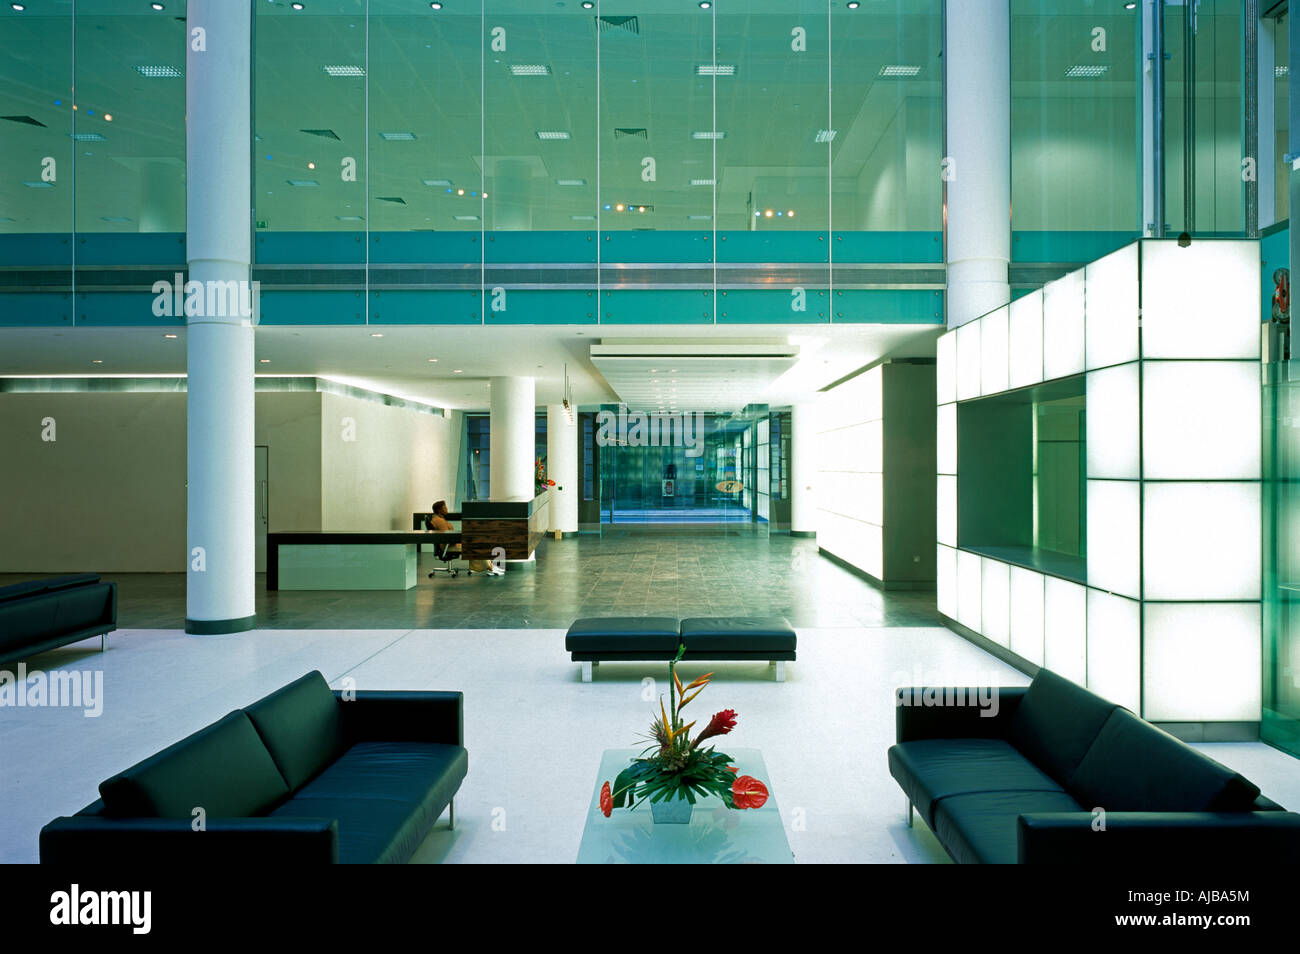 modern office architecture. Atrium Interior With Glass At 25 Copthall Avenue London EC2 England MHXZsm Modern Office Architecture Building Design P